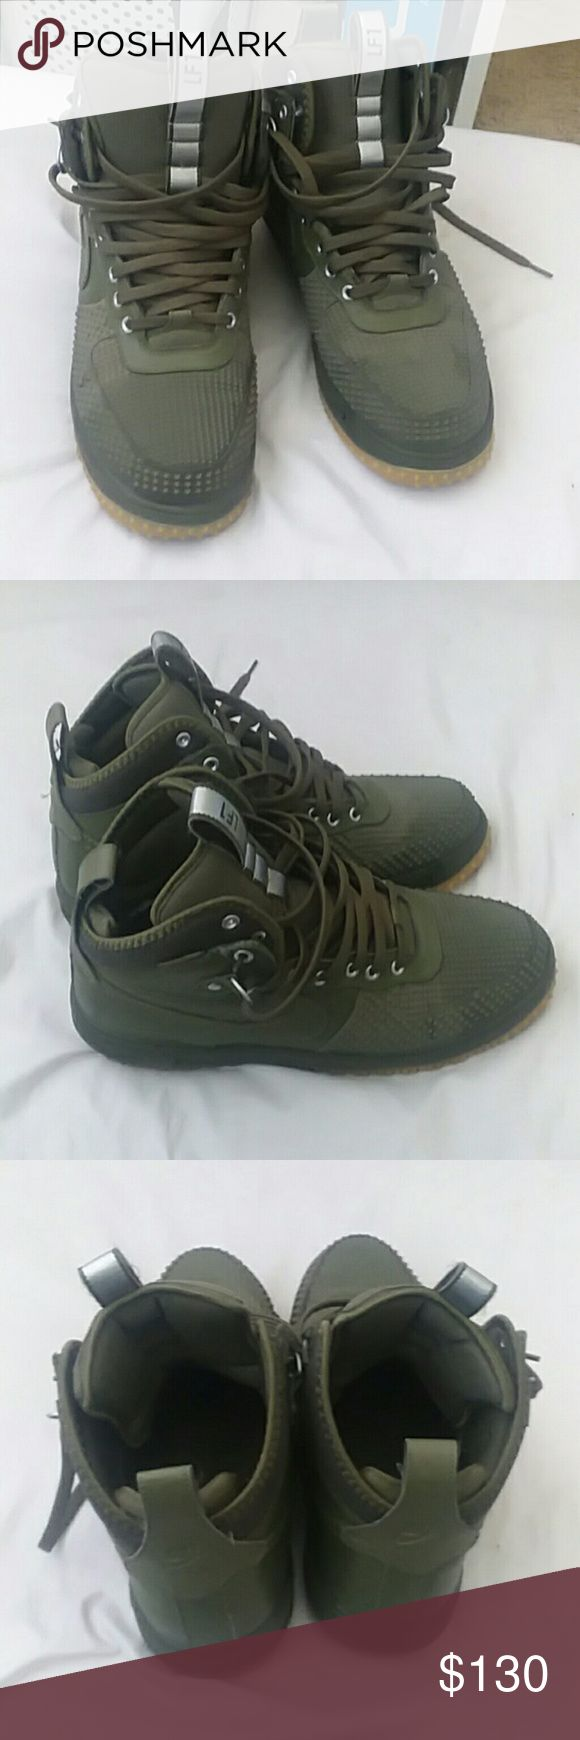 Nike lunar force ones boots condo 9/10 They come in the original box only wore them a few times . Nike Shoes